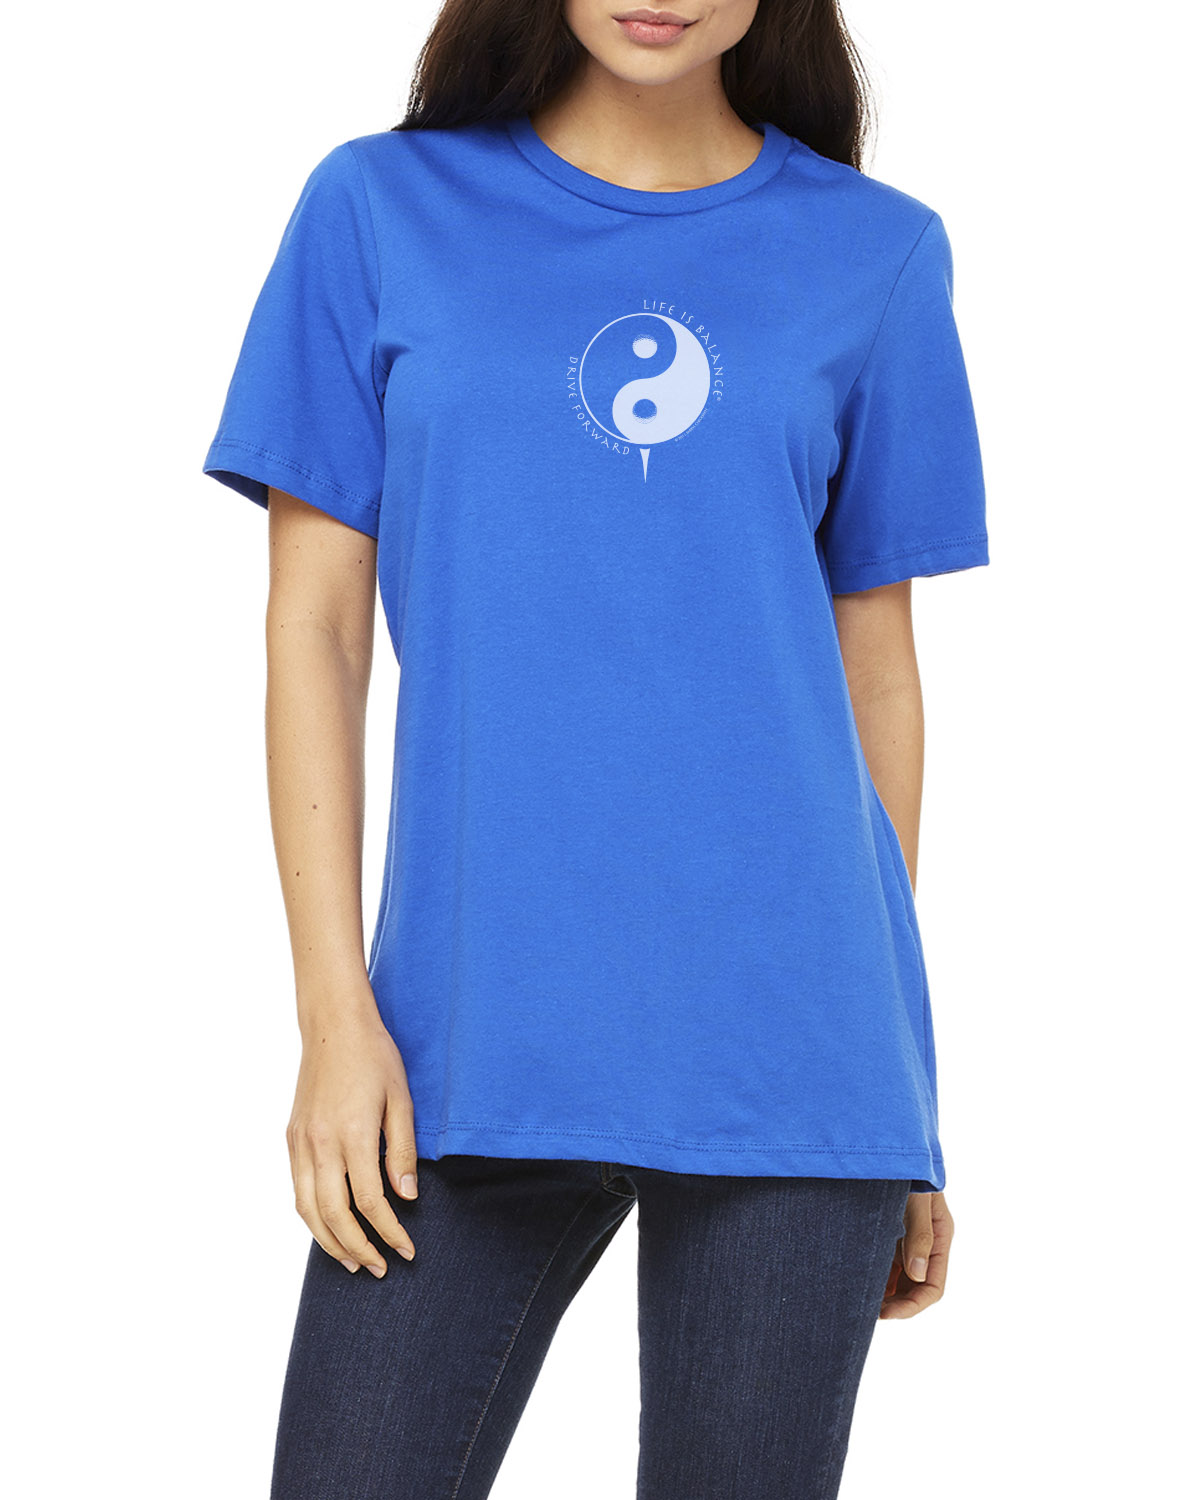 Women's cap sleeve Golf T-shirt (royal)